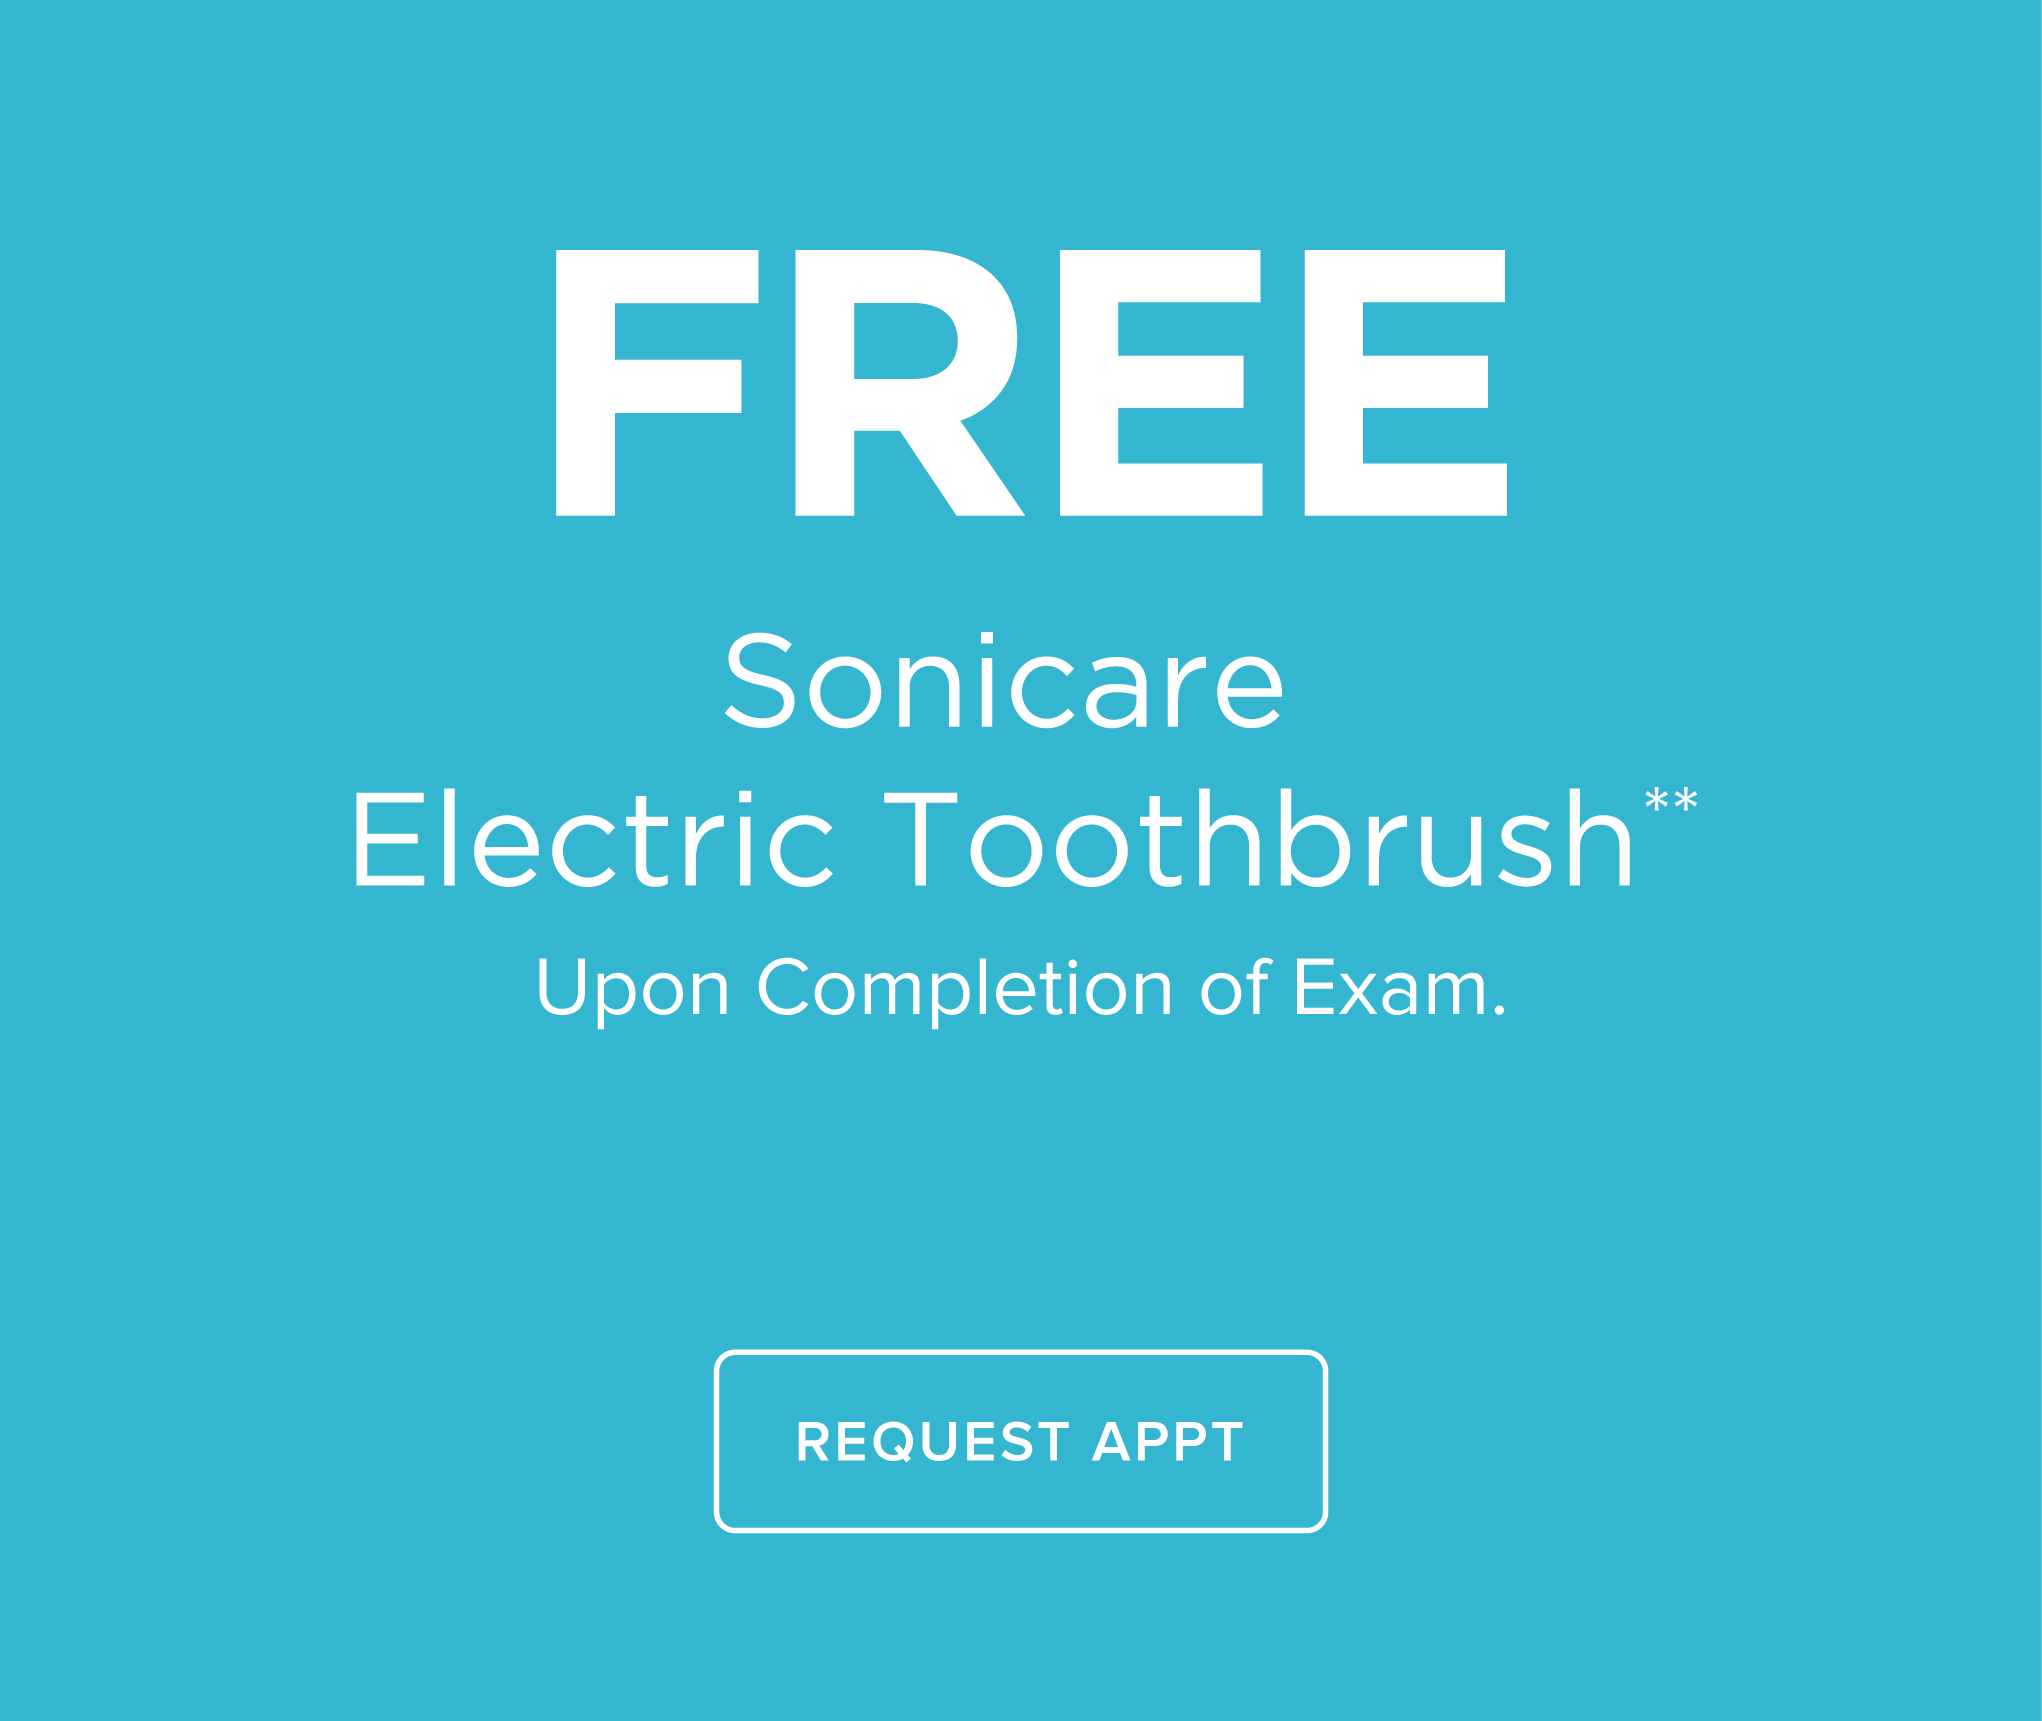 Sonicare Electric Toothbrush - Katy Modern Dentistry and Orthodontics